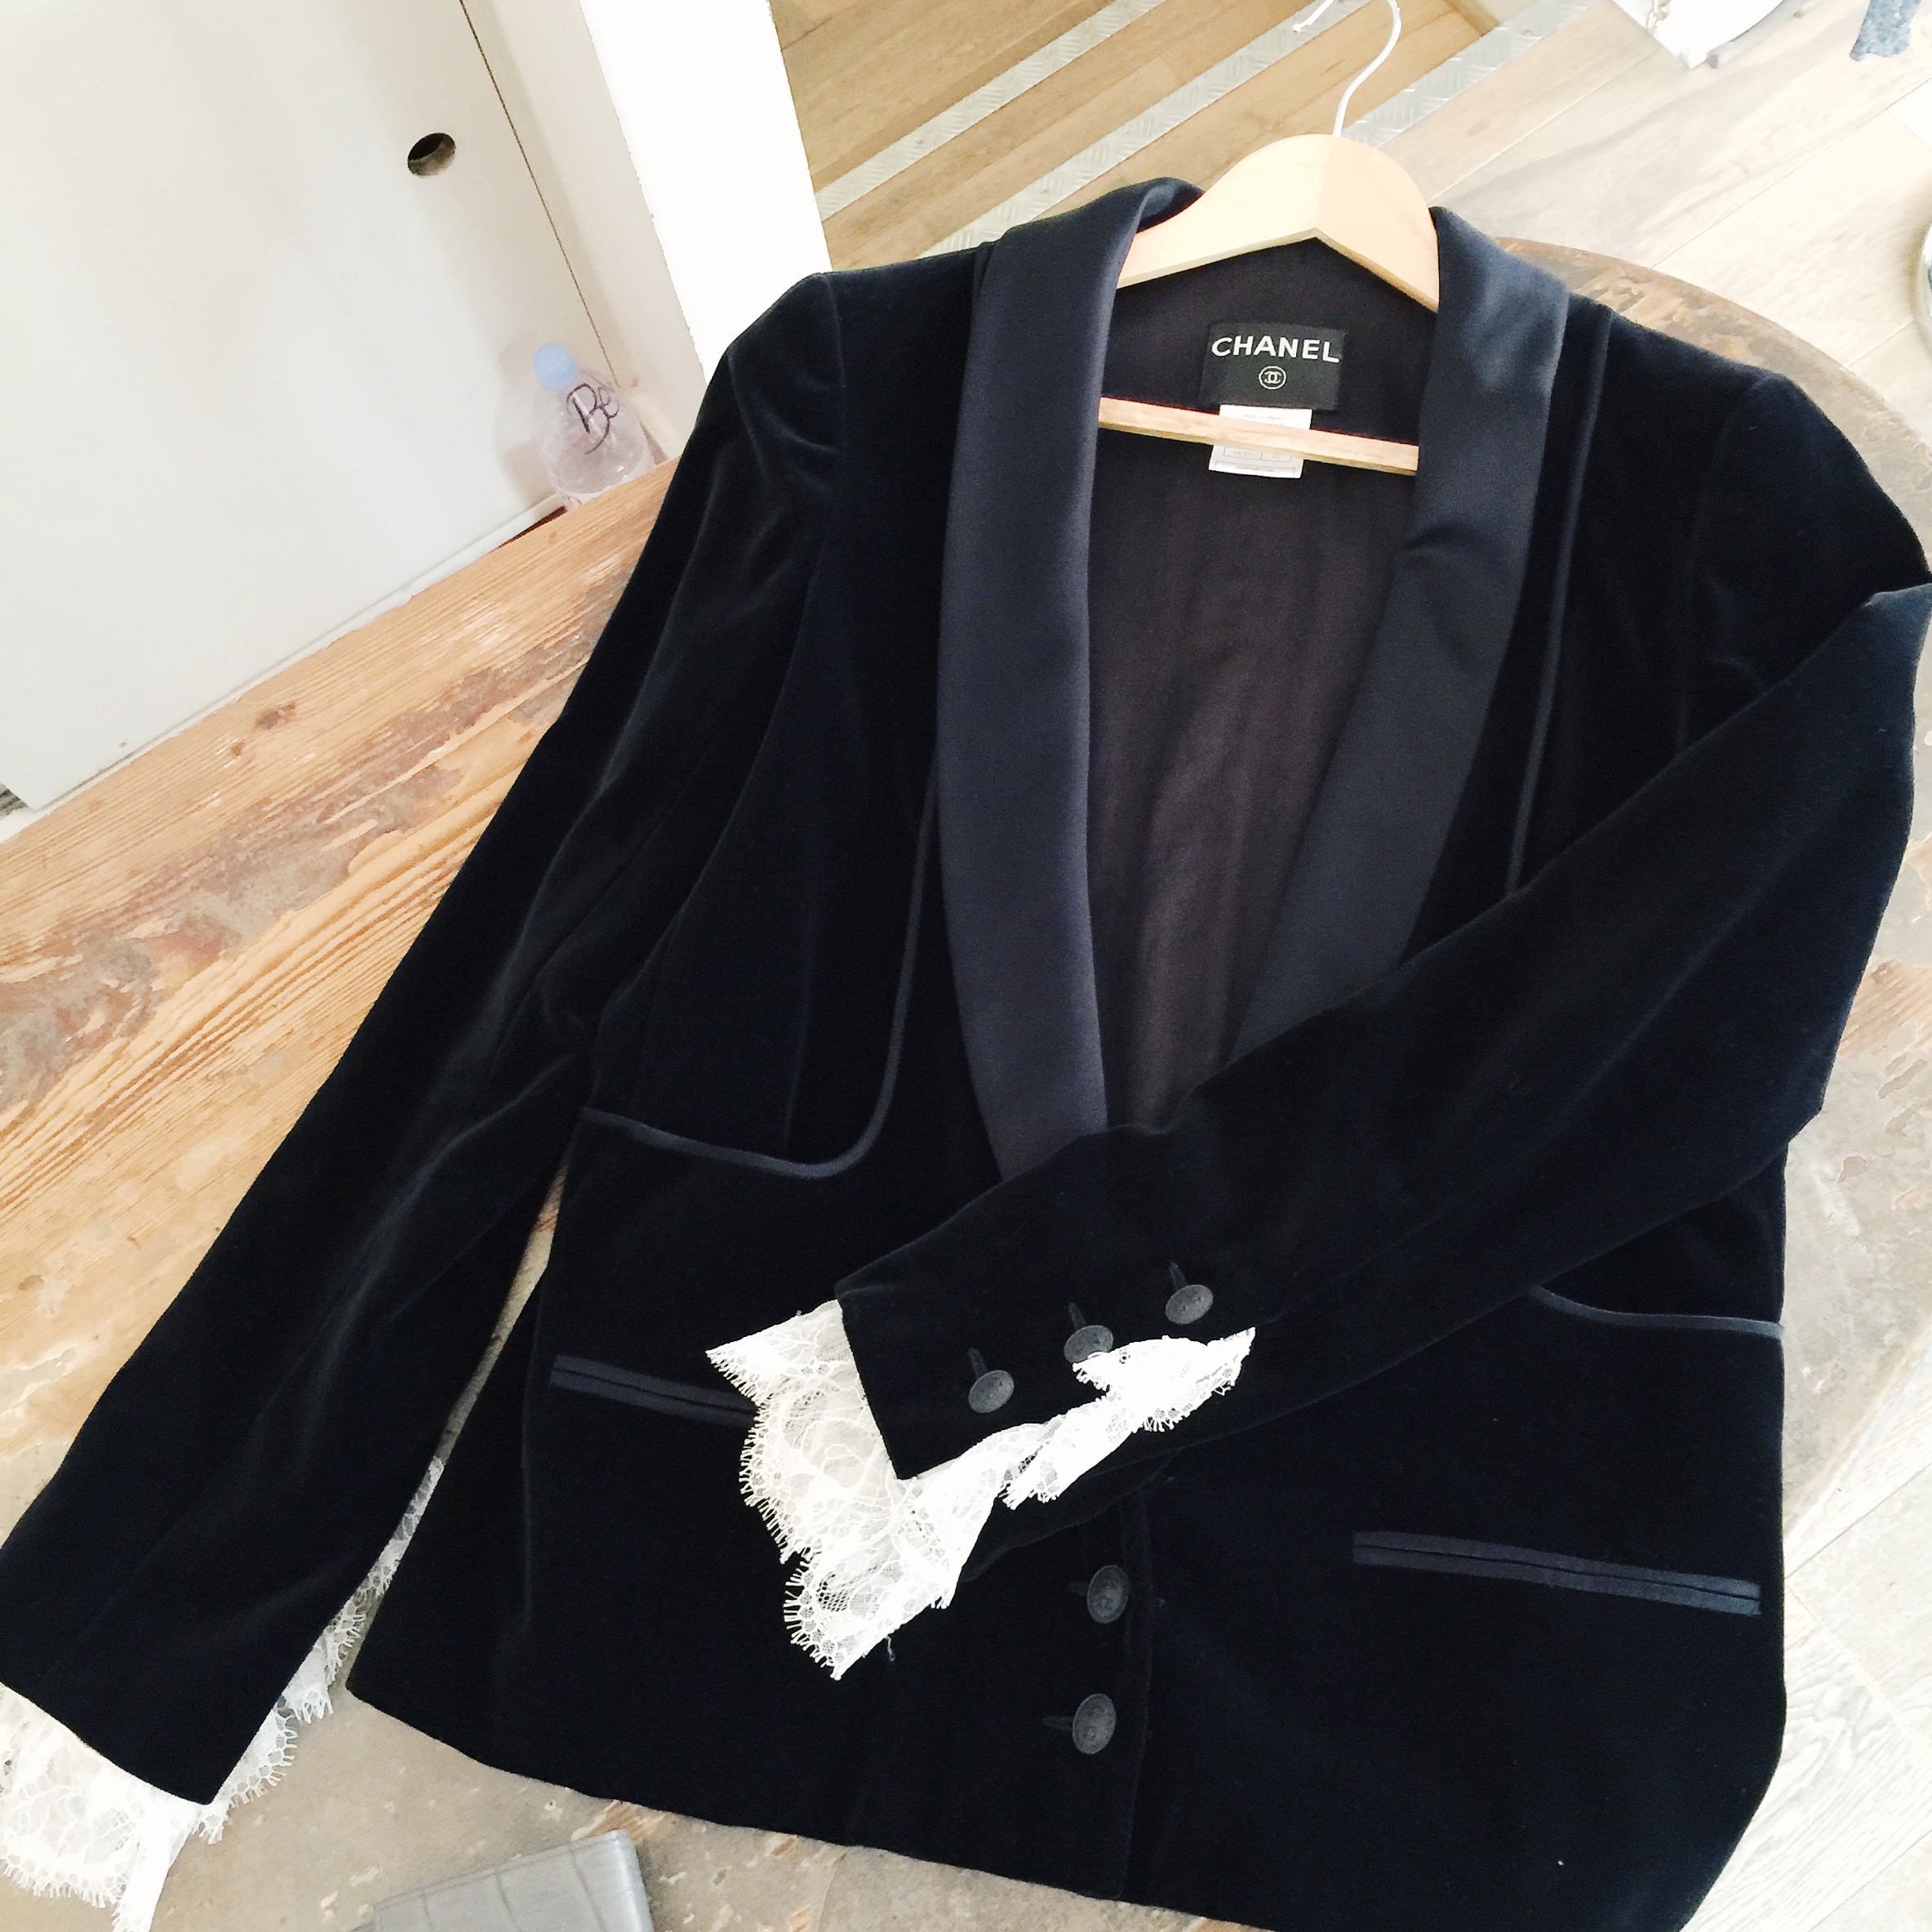 Vintage Chanel Jacket found at The Exchange, London | The Style Scribe